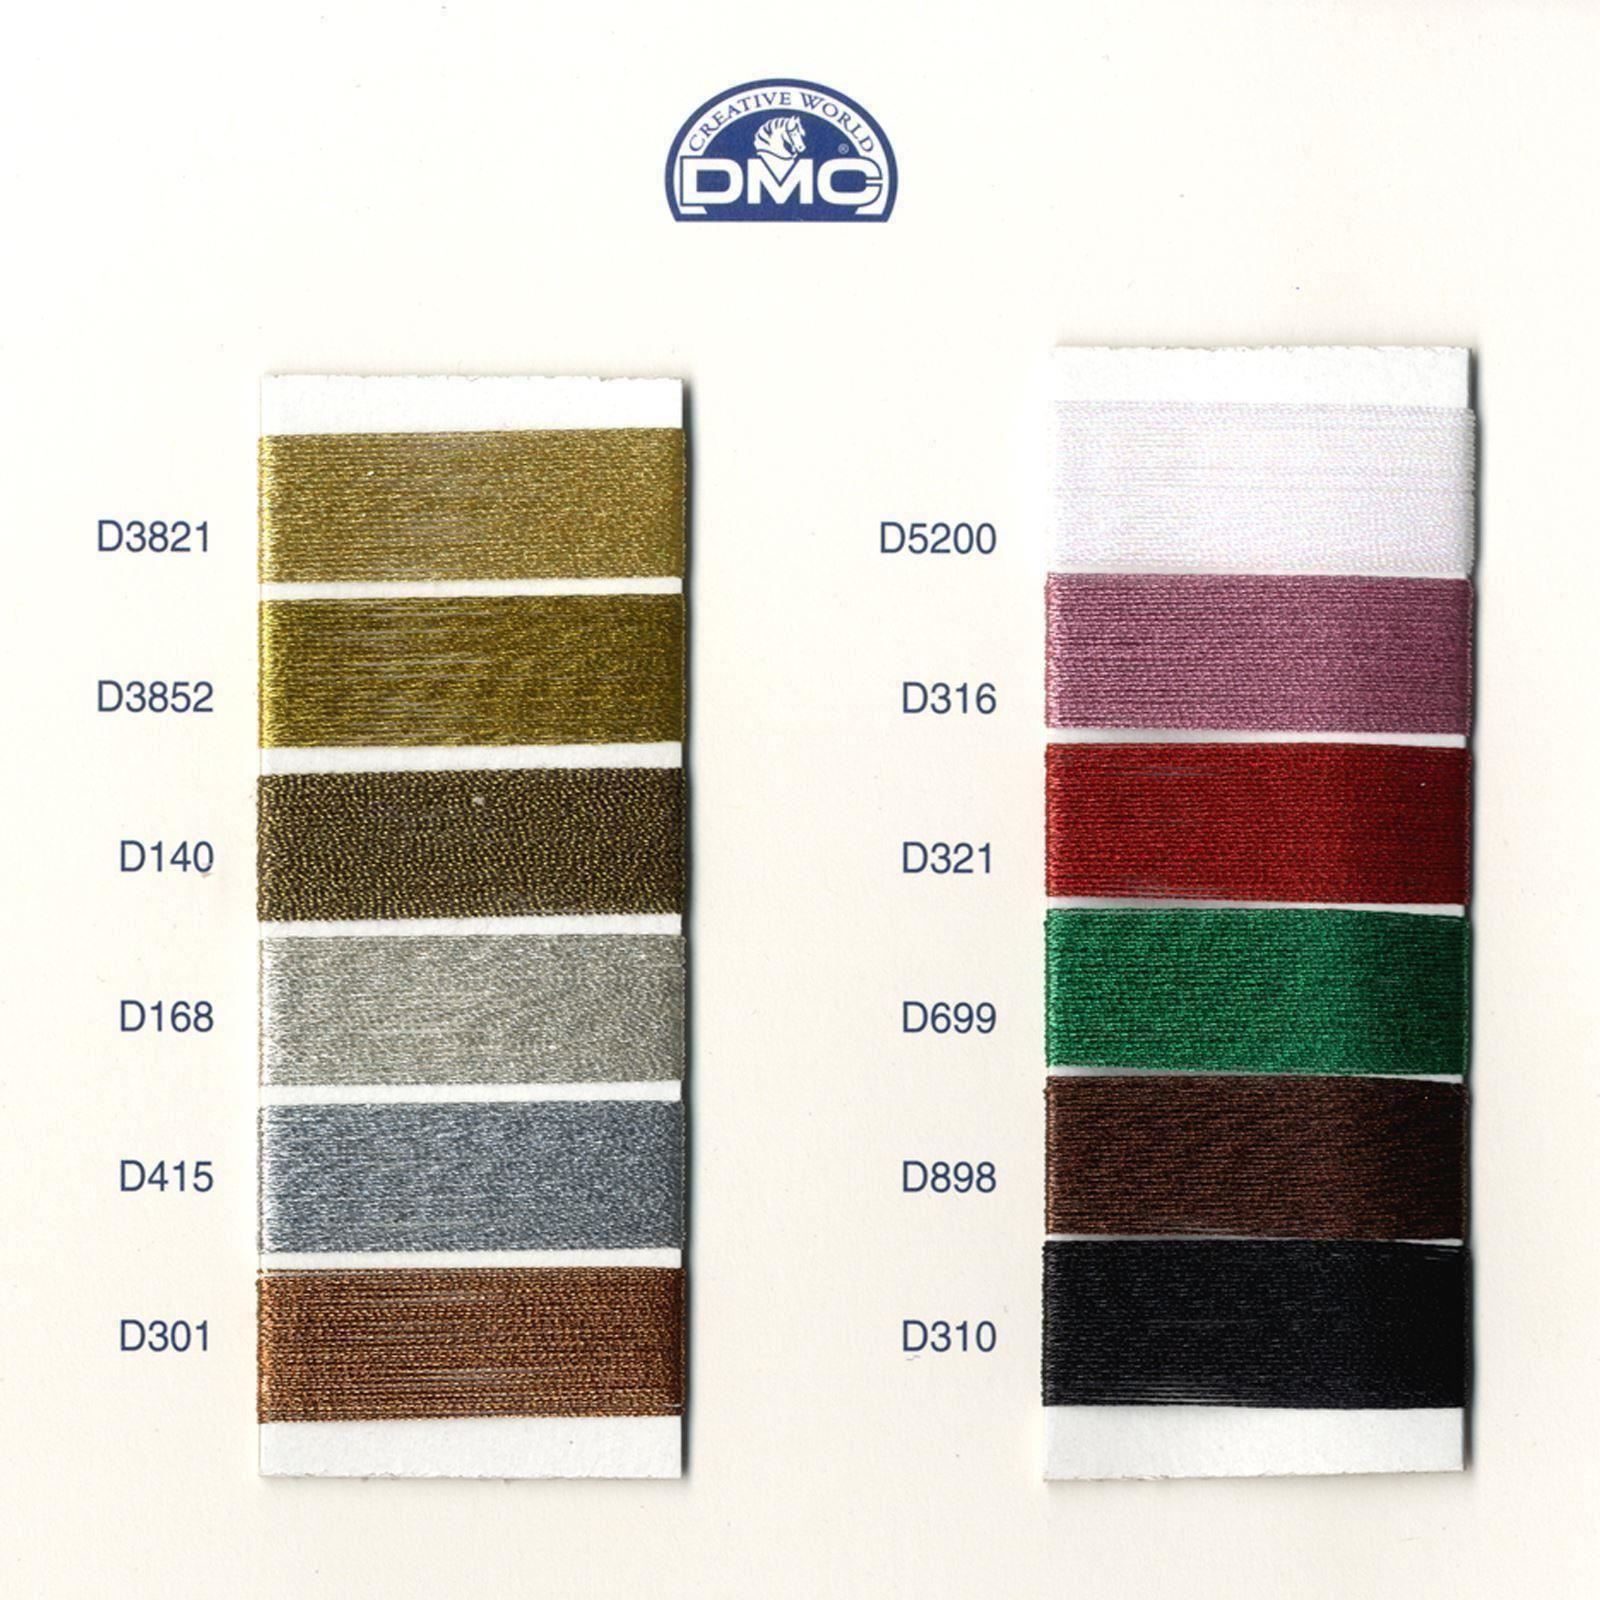 DMC-Diamant-Metallic-Embroidery-Thread-35m-Spool-Cross-Stitch thumbnail 9